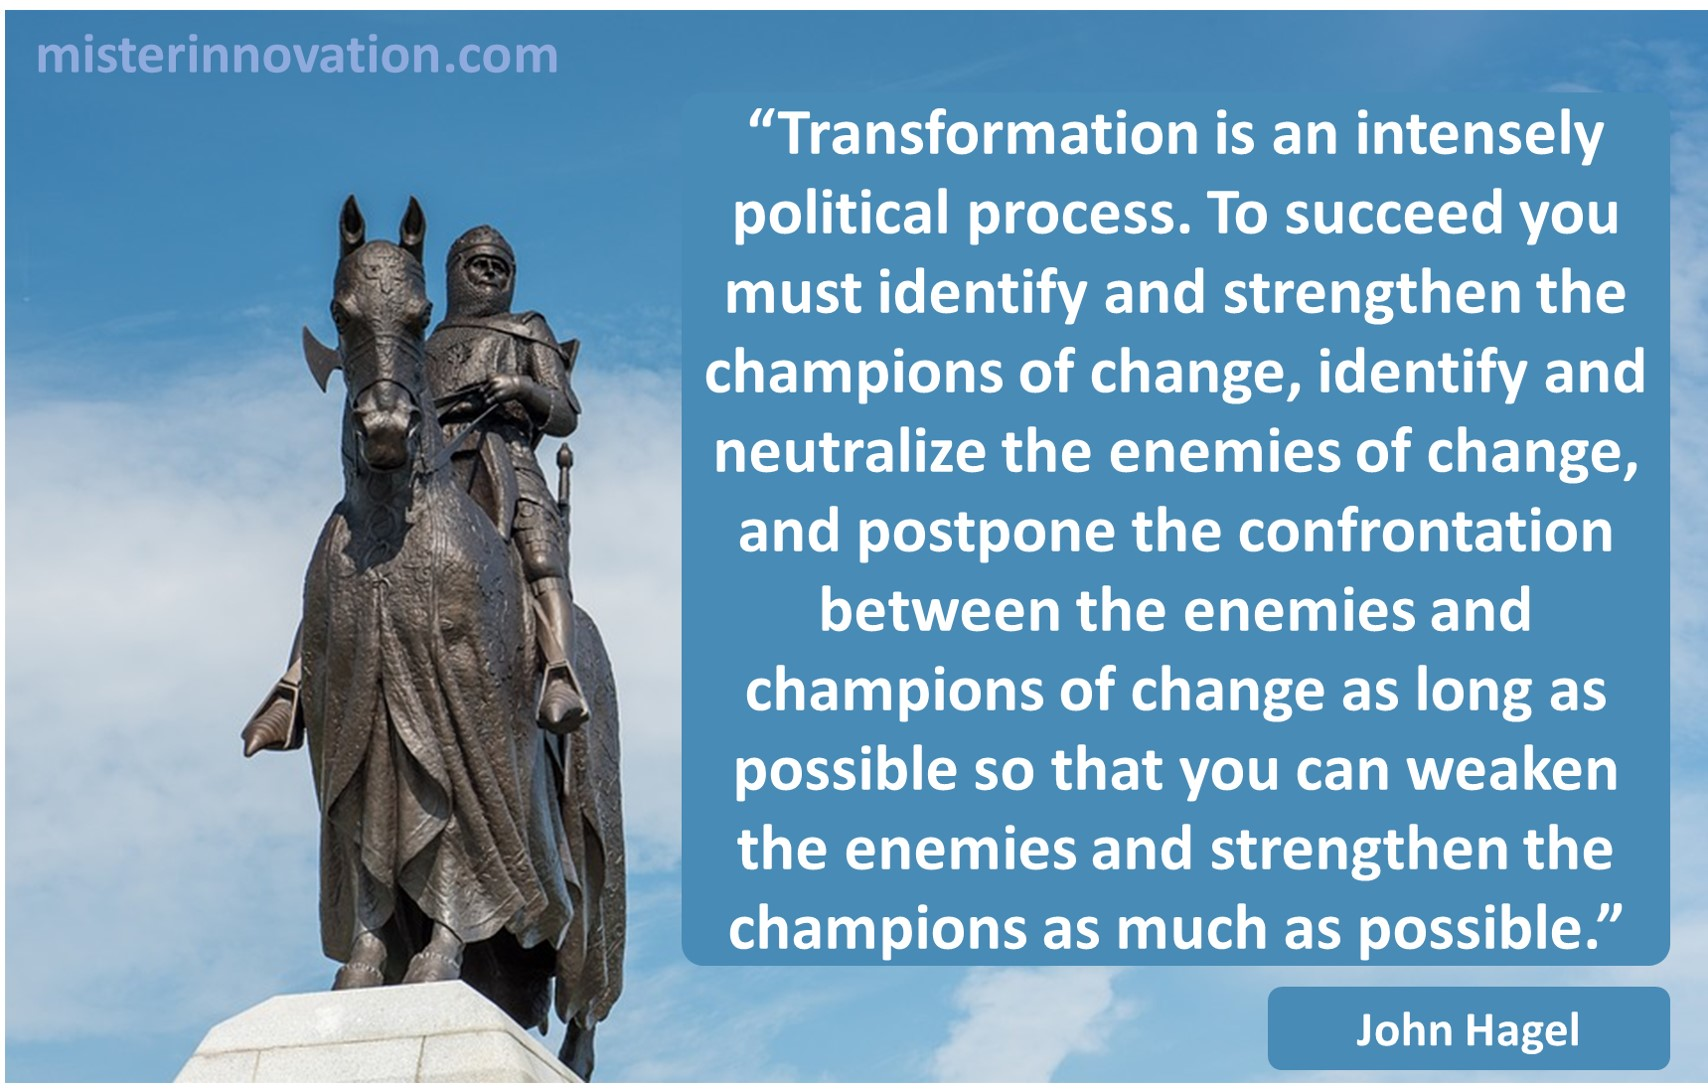 John Hagel quote on the politics of transformation and change